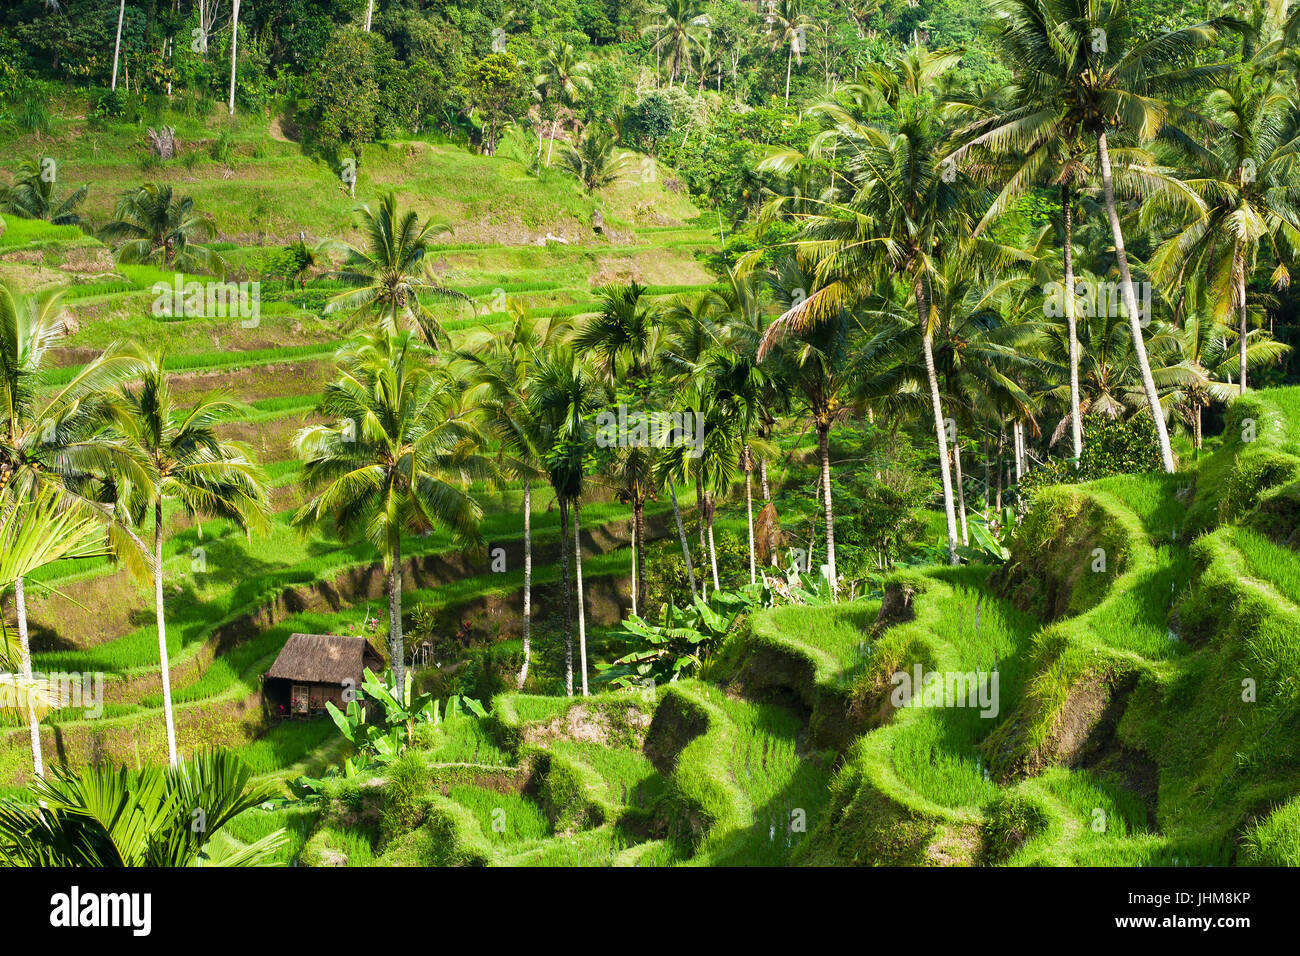 Beautiful rice terraces in the morning light, Ubud, Bali, Indonesia. - Stock Image